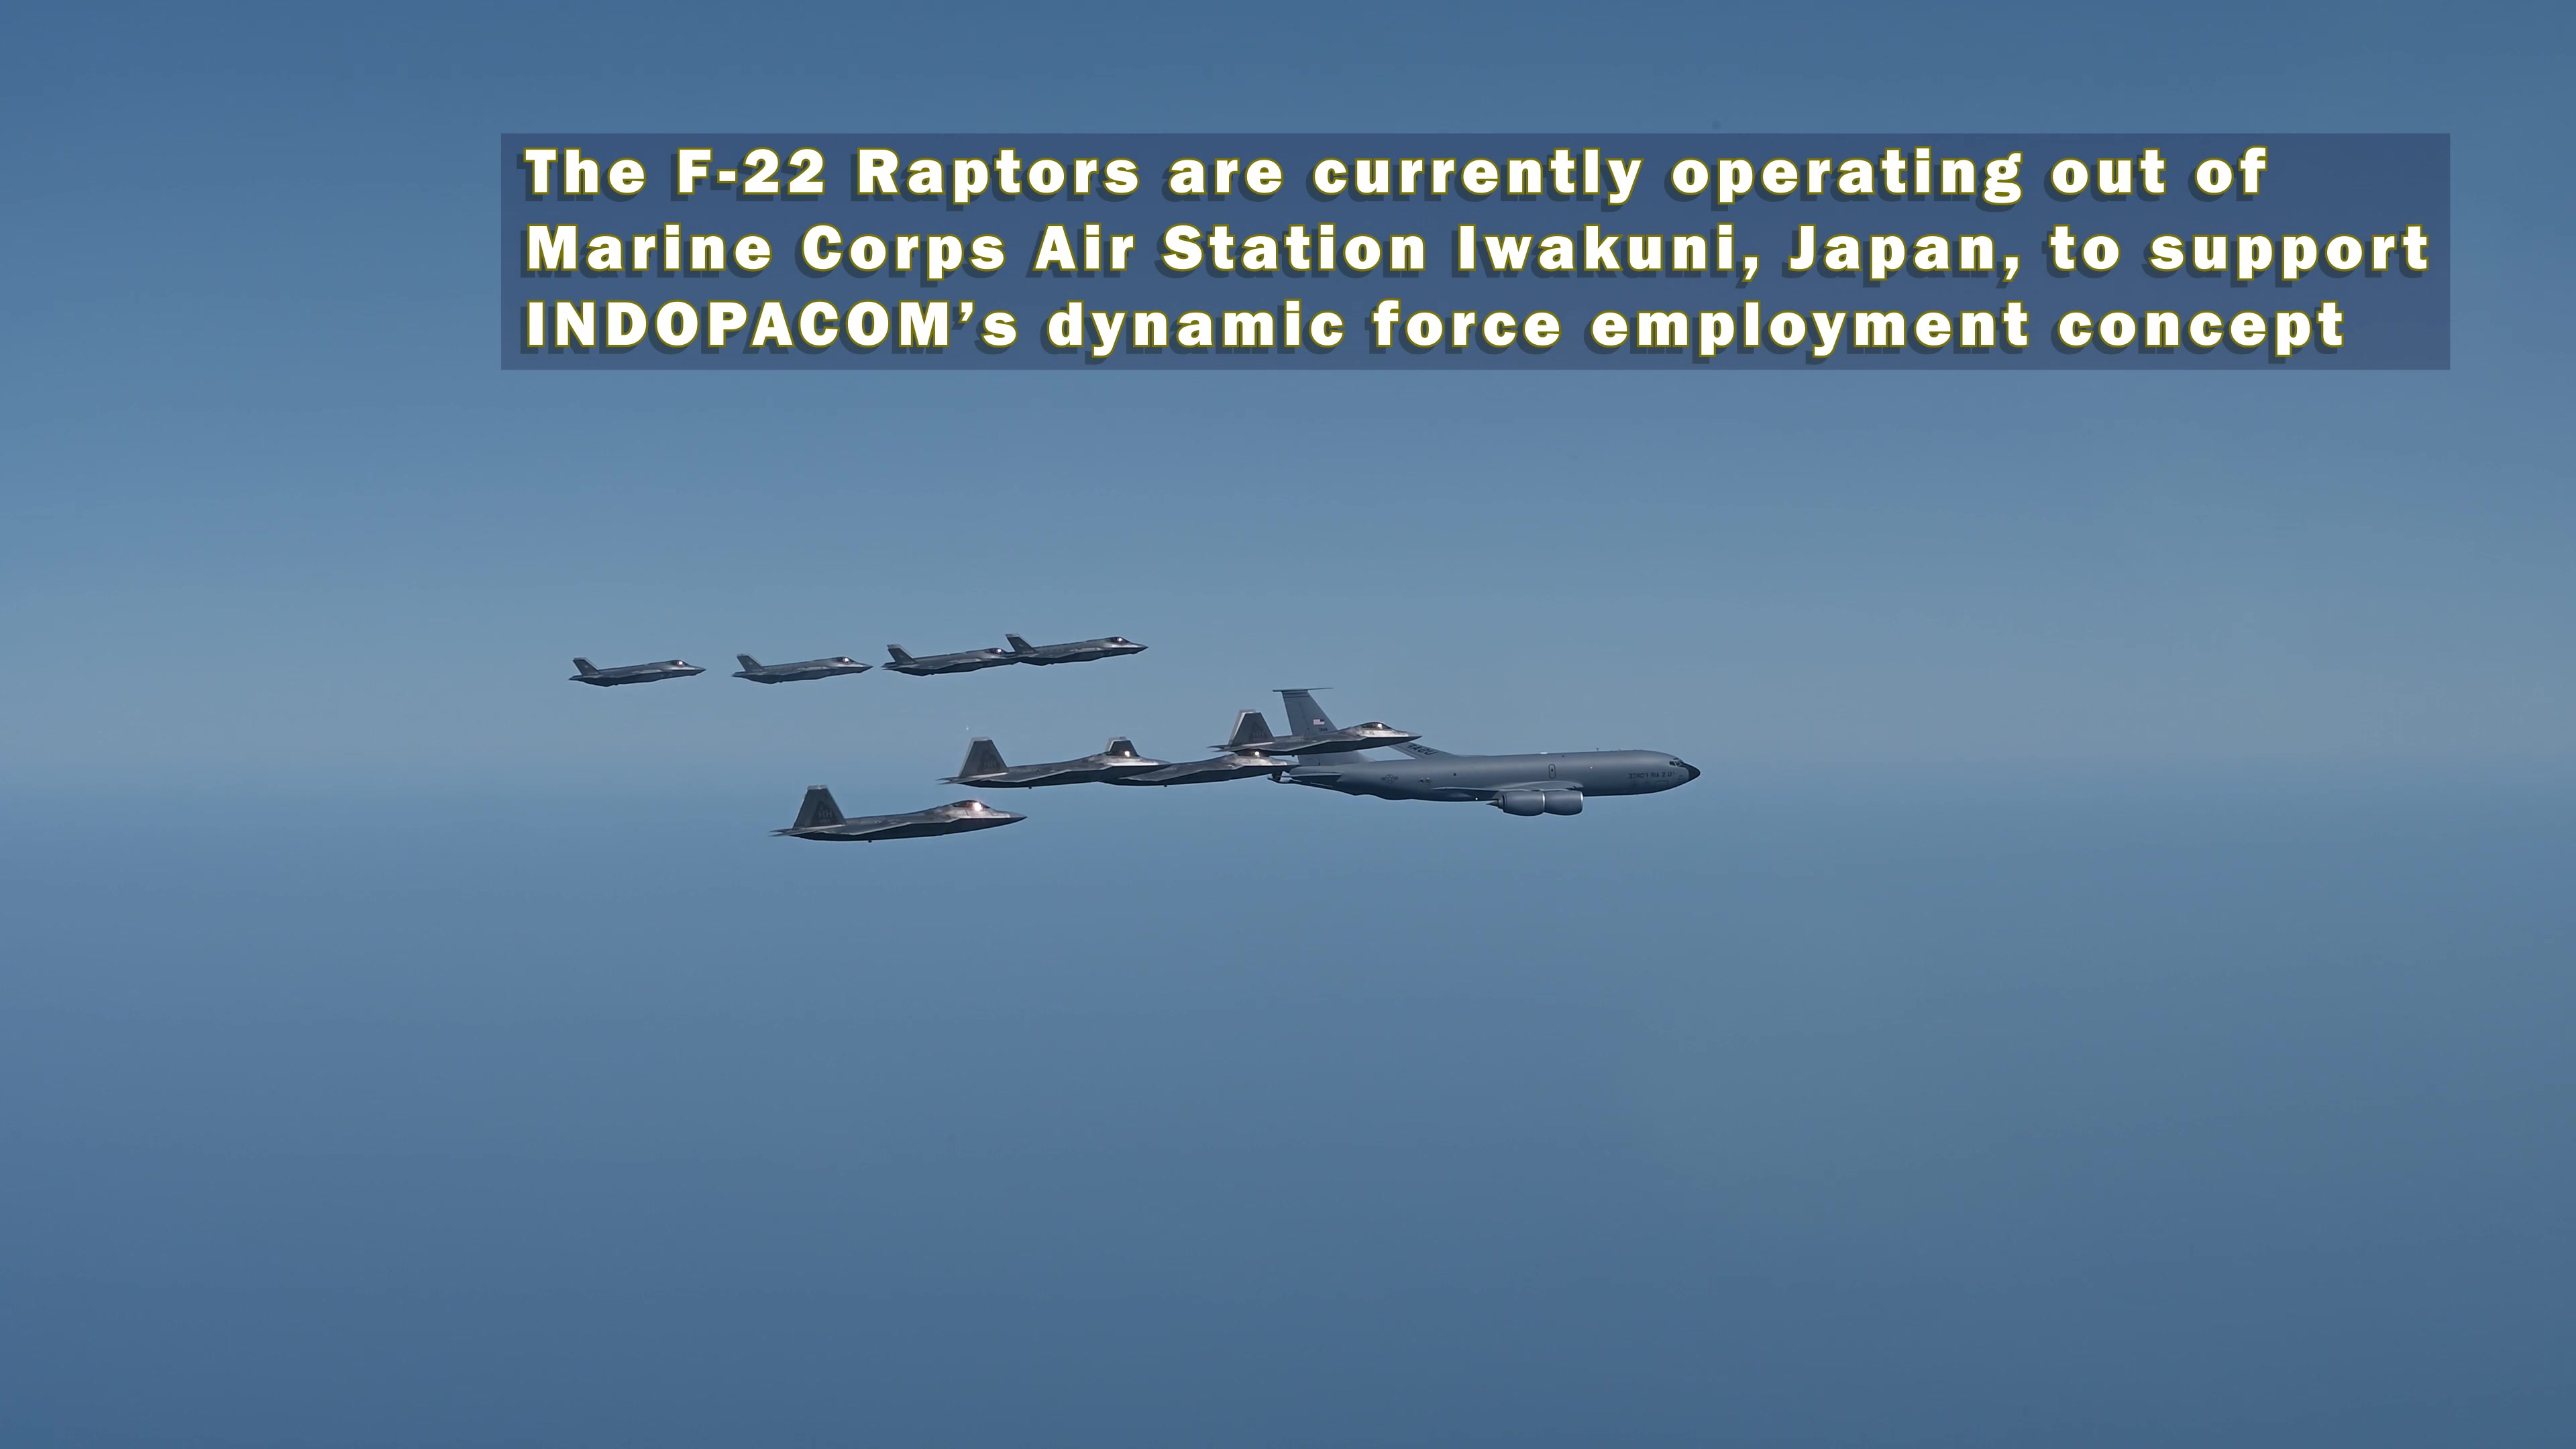 U.S. Air Force F-22 Raptors from the 199th Fighter Squadron and Japan Air Self-Defense Force F-35A Lightning II aircraft from the 302nd Tactical Fighter Squadron fly alongside a USAF KC-135 Stratotanker from the 909th Air Refueling Squadron during 5th generation fighter training near Japan, Apr. 1, 2021. The F-22 Raptors are currently operating out of Marine Corps Air Station Iwakuni, Japan, to support U.S. Indo-Pacific Command's dynamic force employment concept. U.S. and Japanese forces train and operate together regularly, employing a full spectrum of joint and bilateral capabilities, to defend Japan and support a secure and stable Indo-Pacific region. (U.S. Air Force photo by Staff Sgt. Matthew Kakaris)